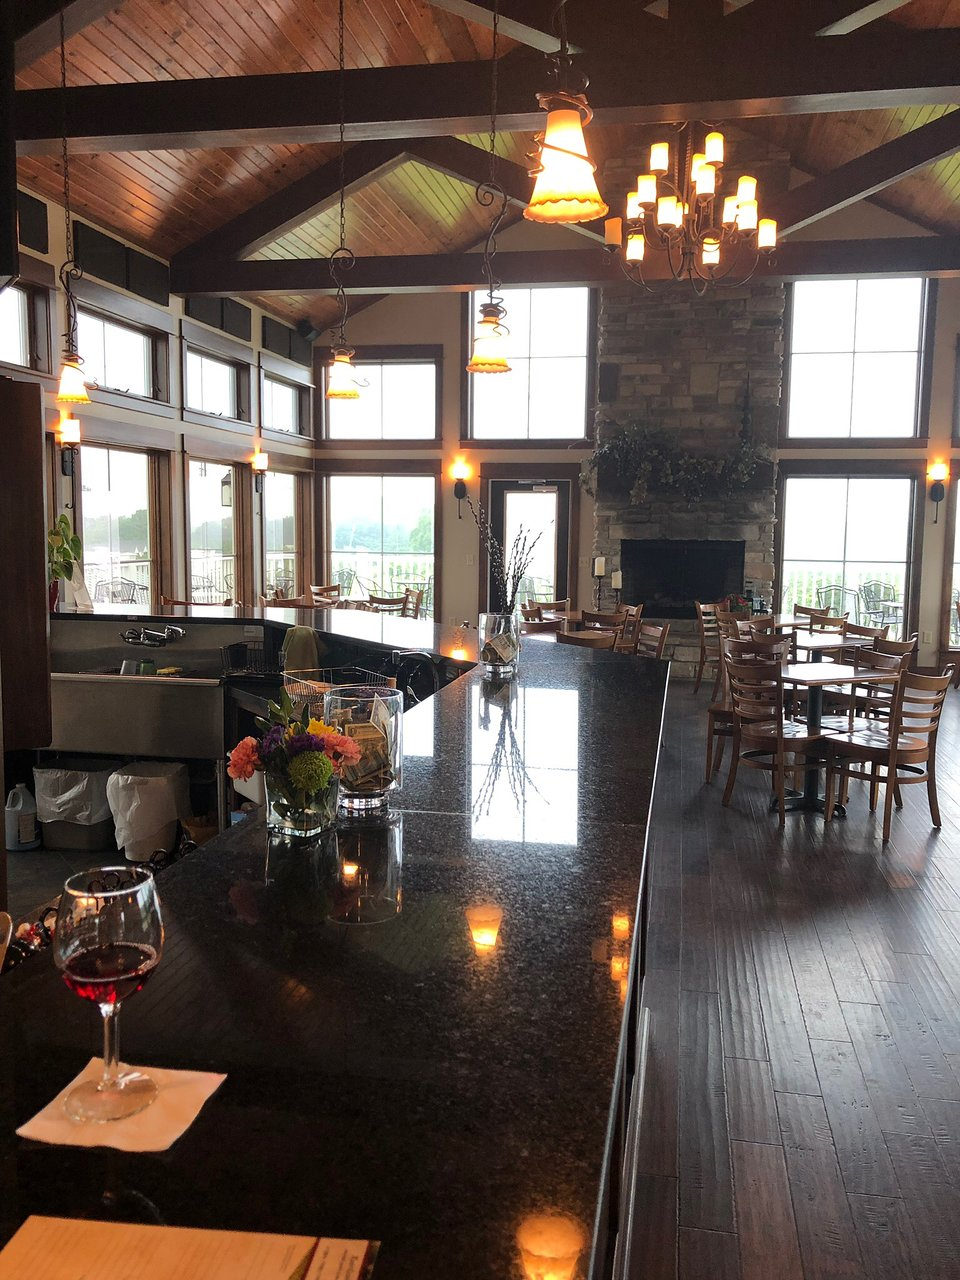 Quarry Hill Winery Berlin Heights 2020 All You Need To Know Before You Go With Photos Tripadvisor